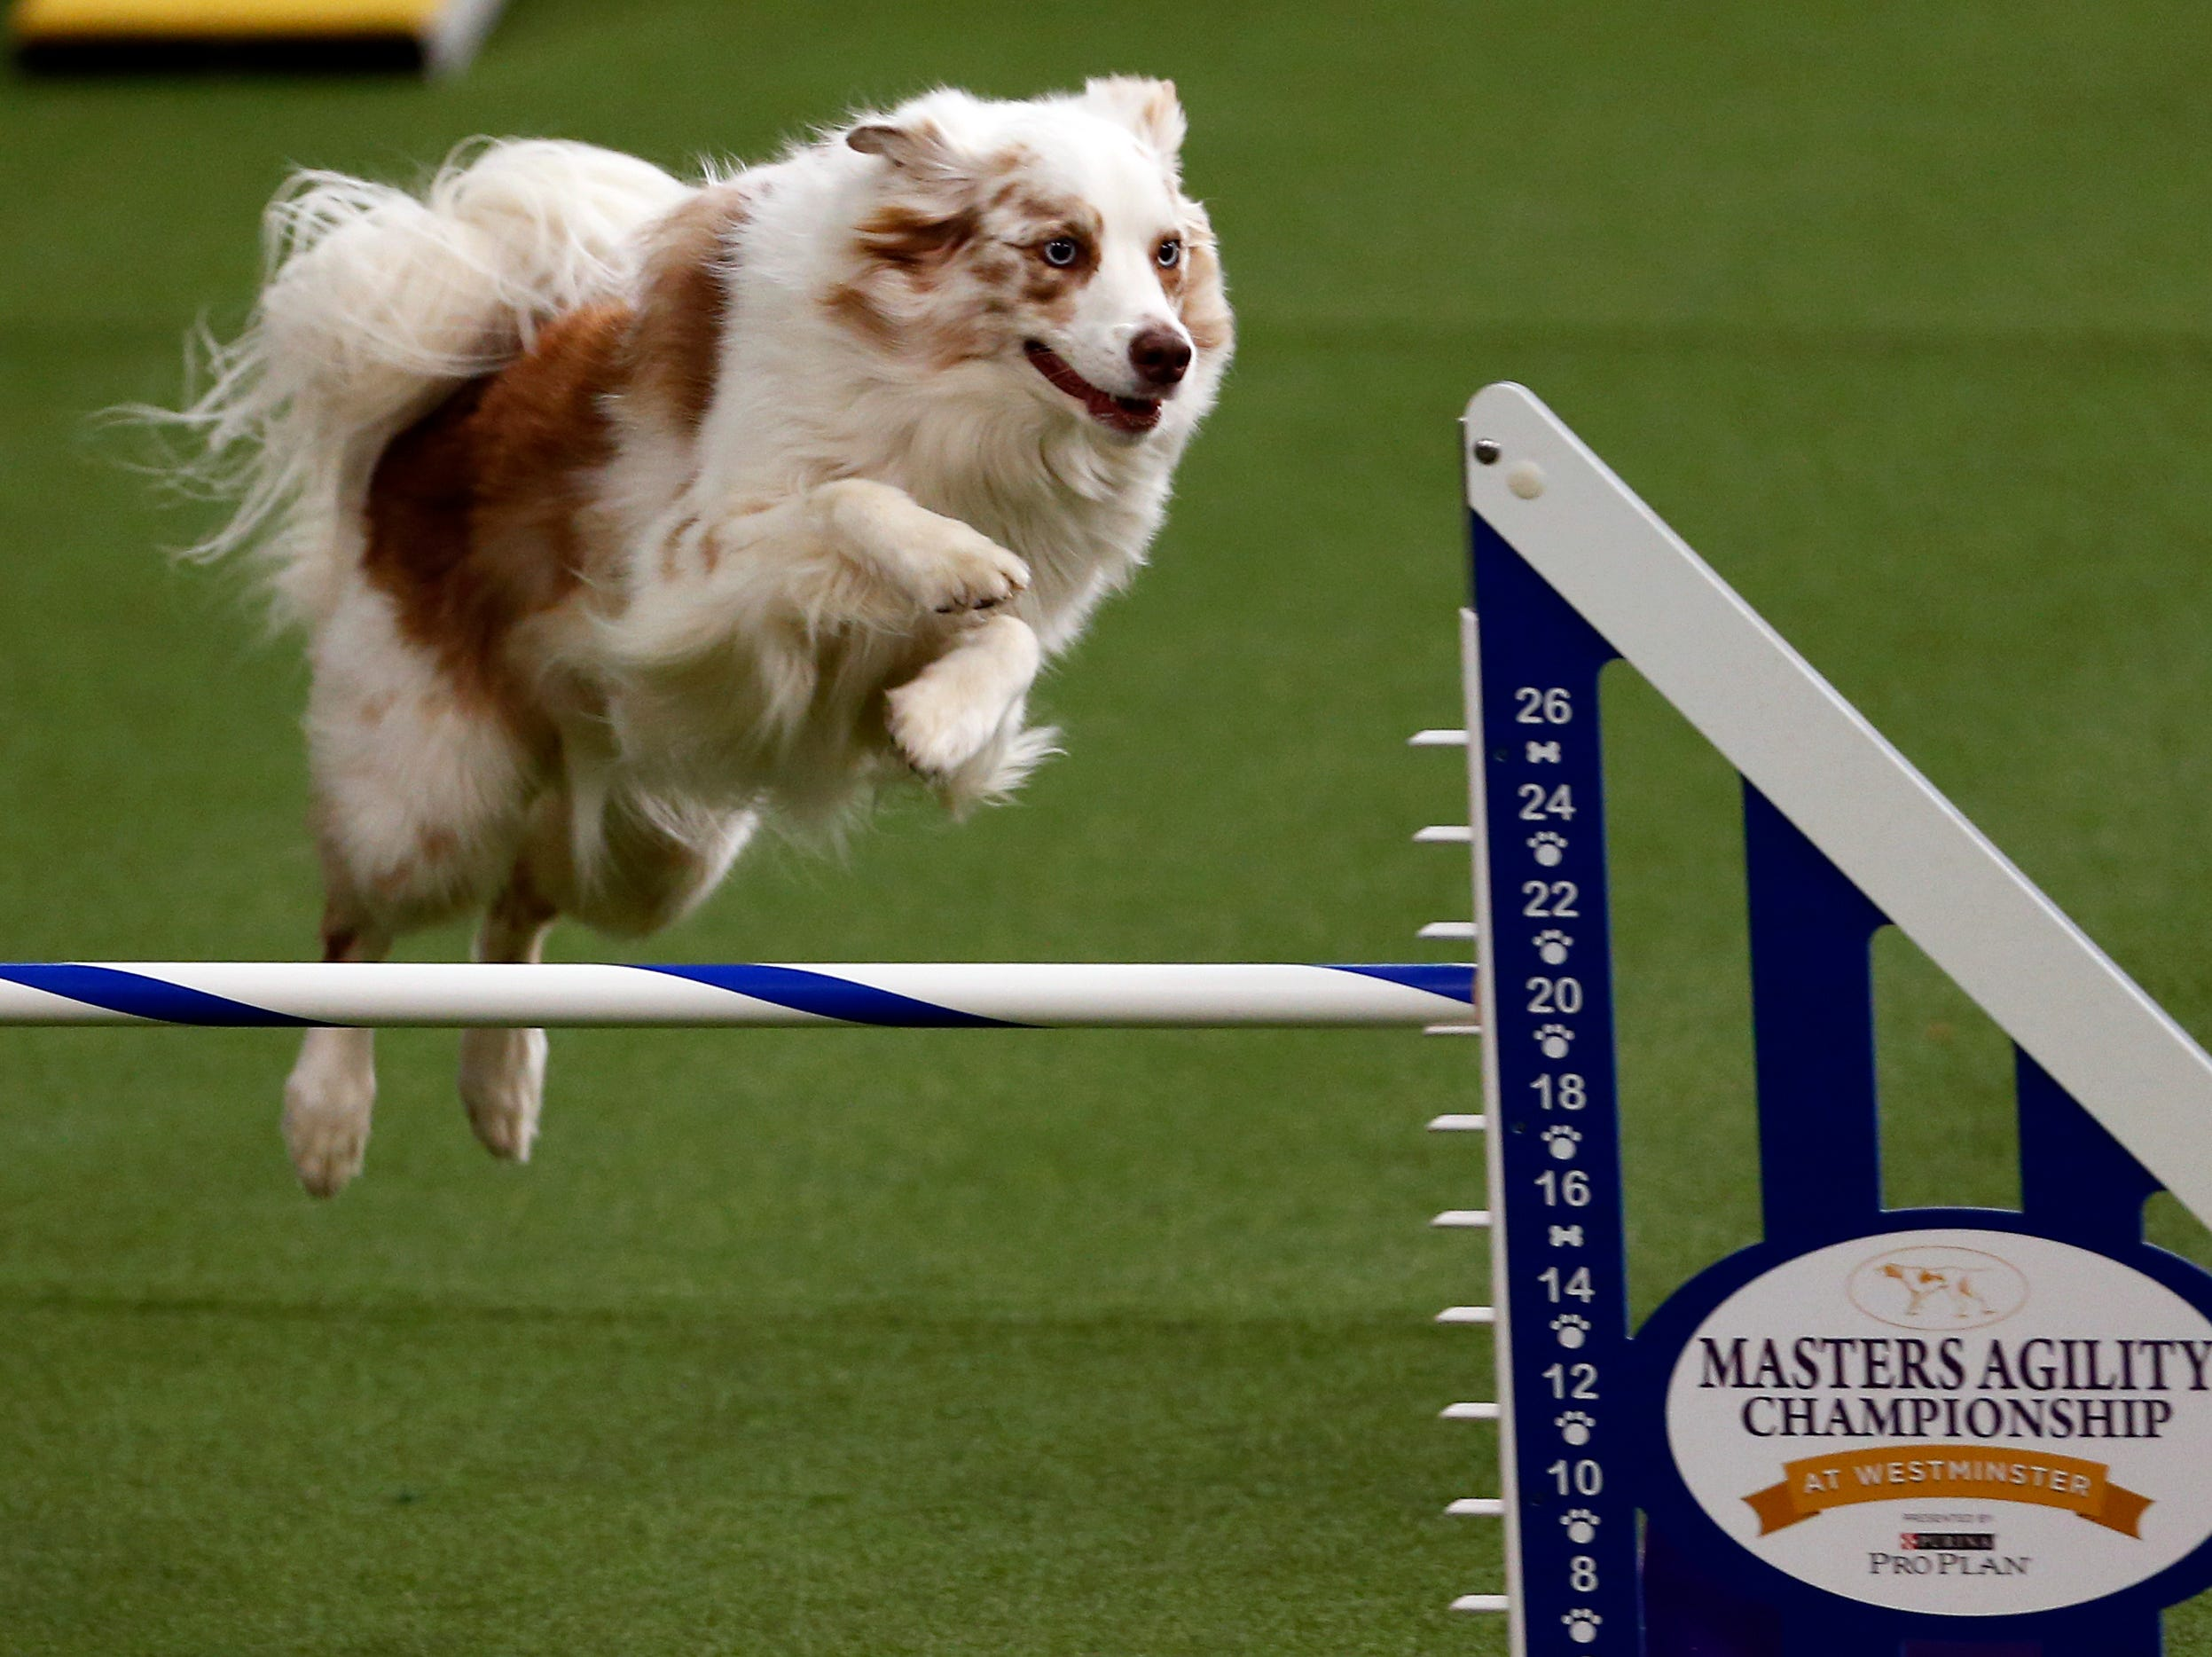 Gracie, an Australian Shepherd, is seen during masters agility preliminaries at the 143rd Annual Westminster Kennel Club Dog Show at Piers 92/94.